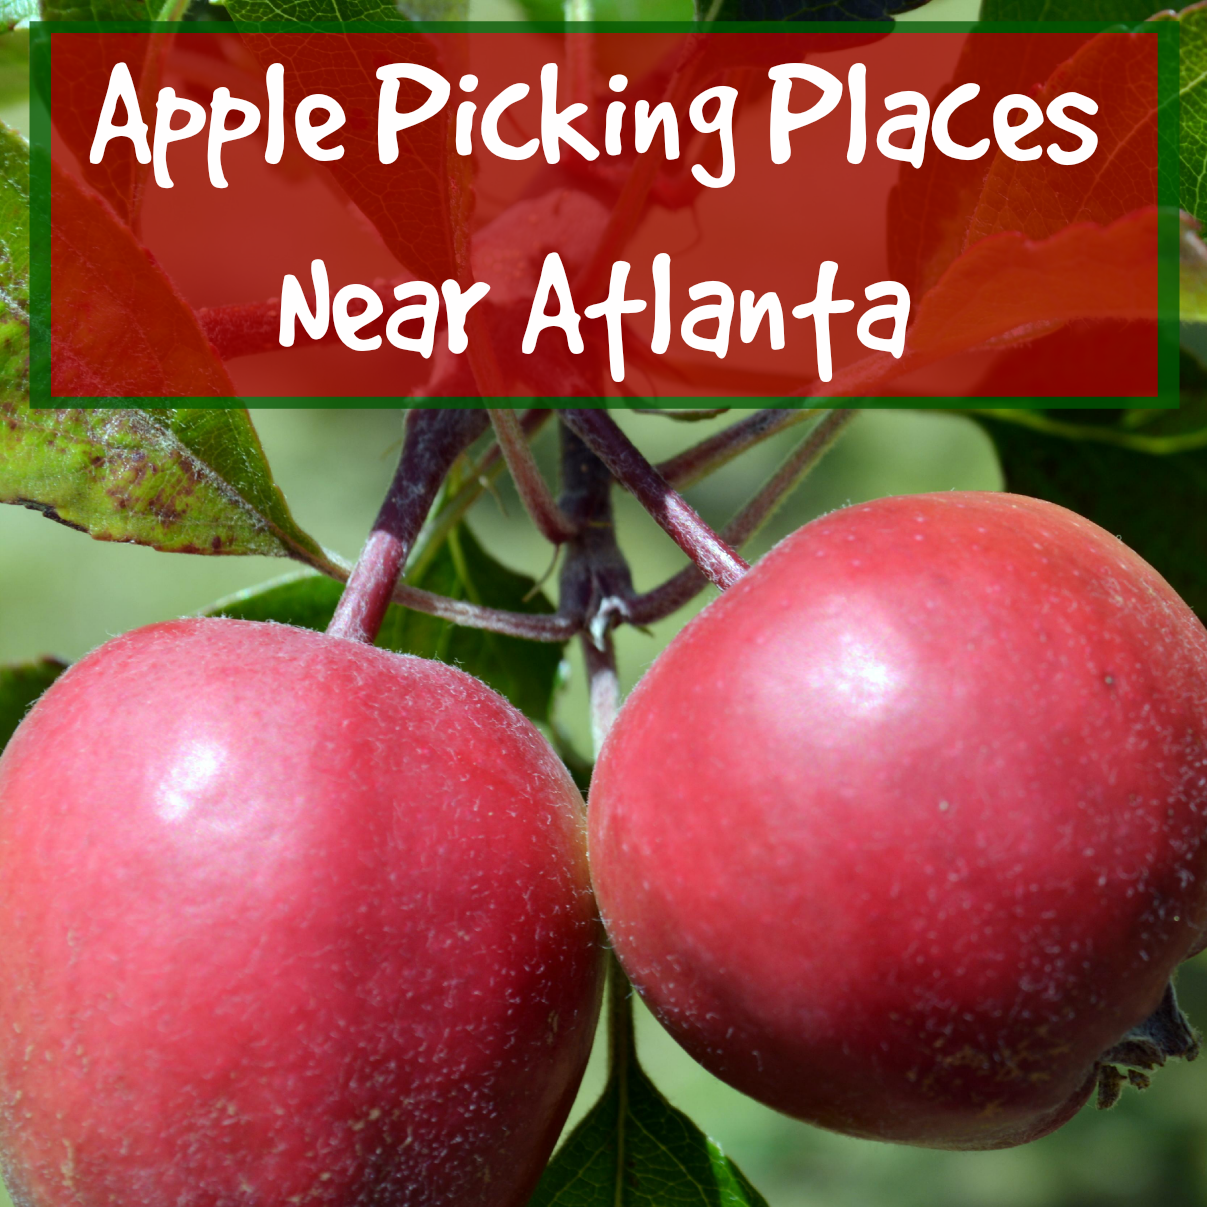 Atlanta Apple Picking - Apple Orchards